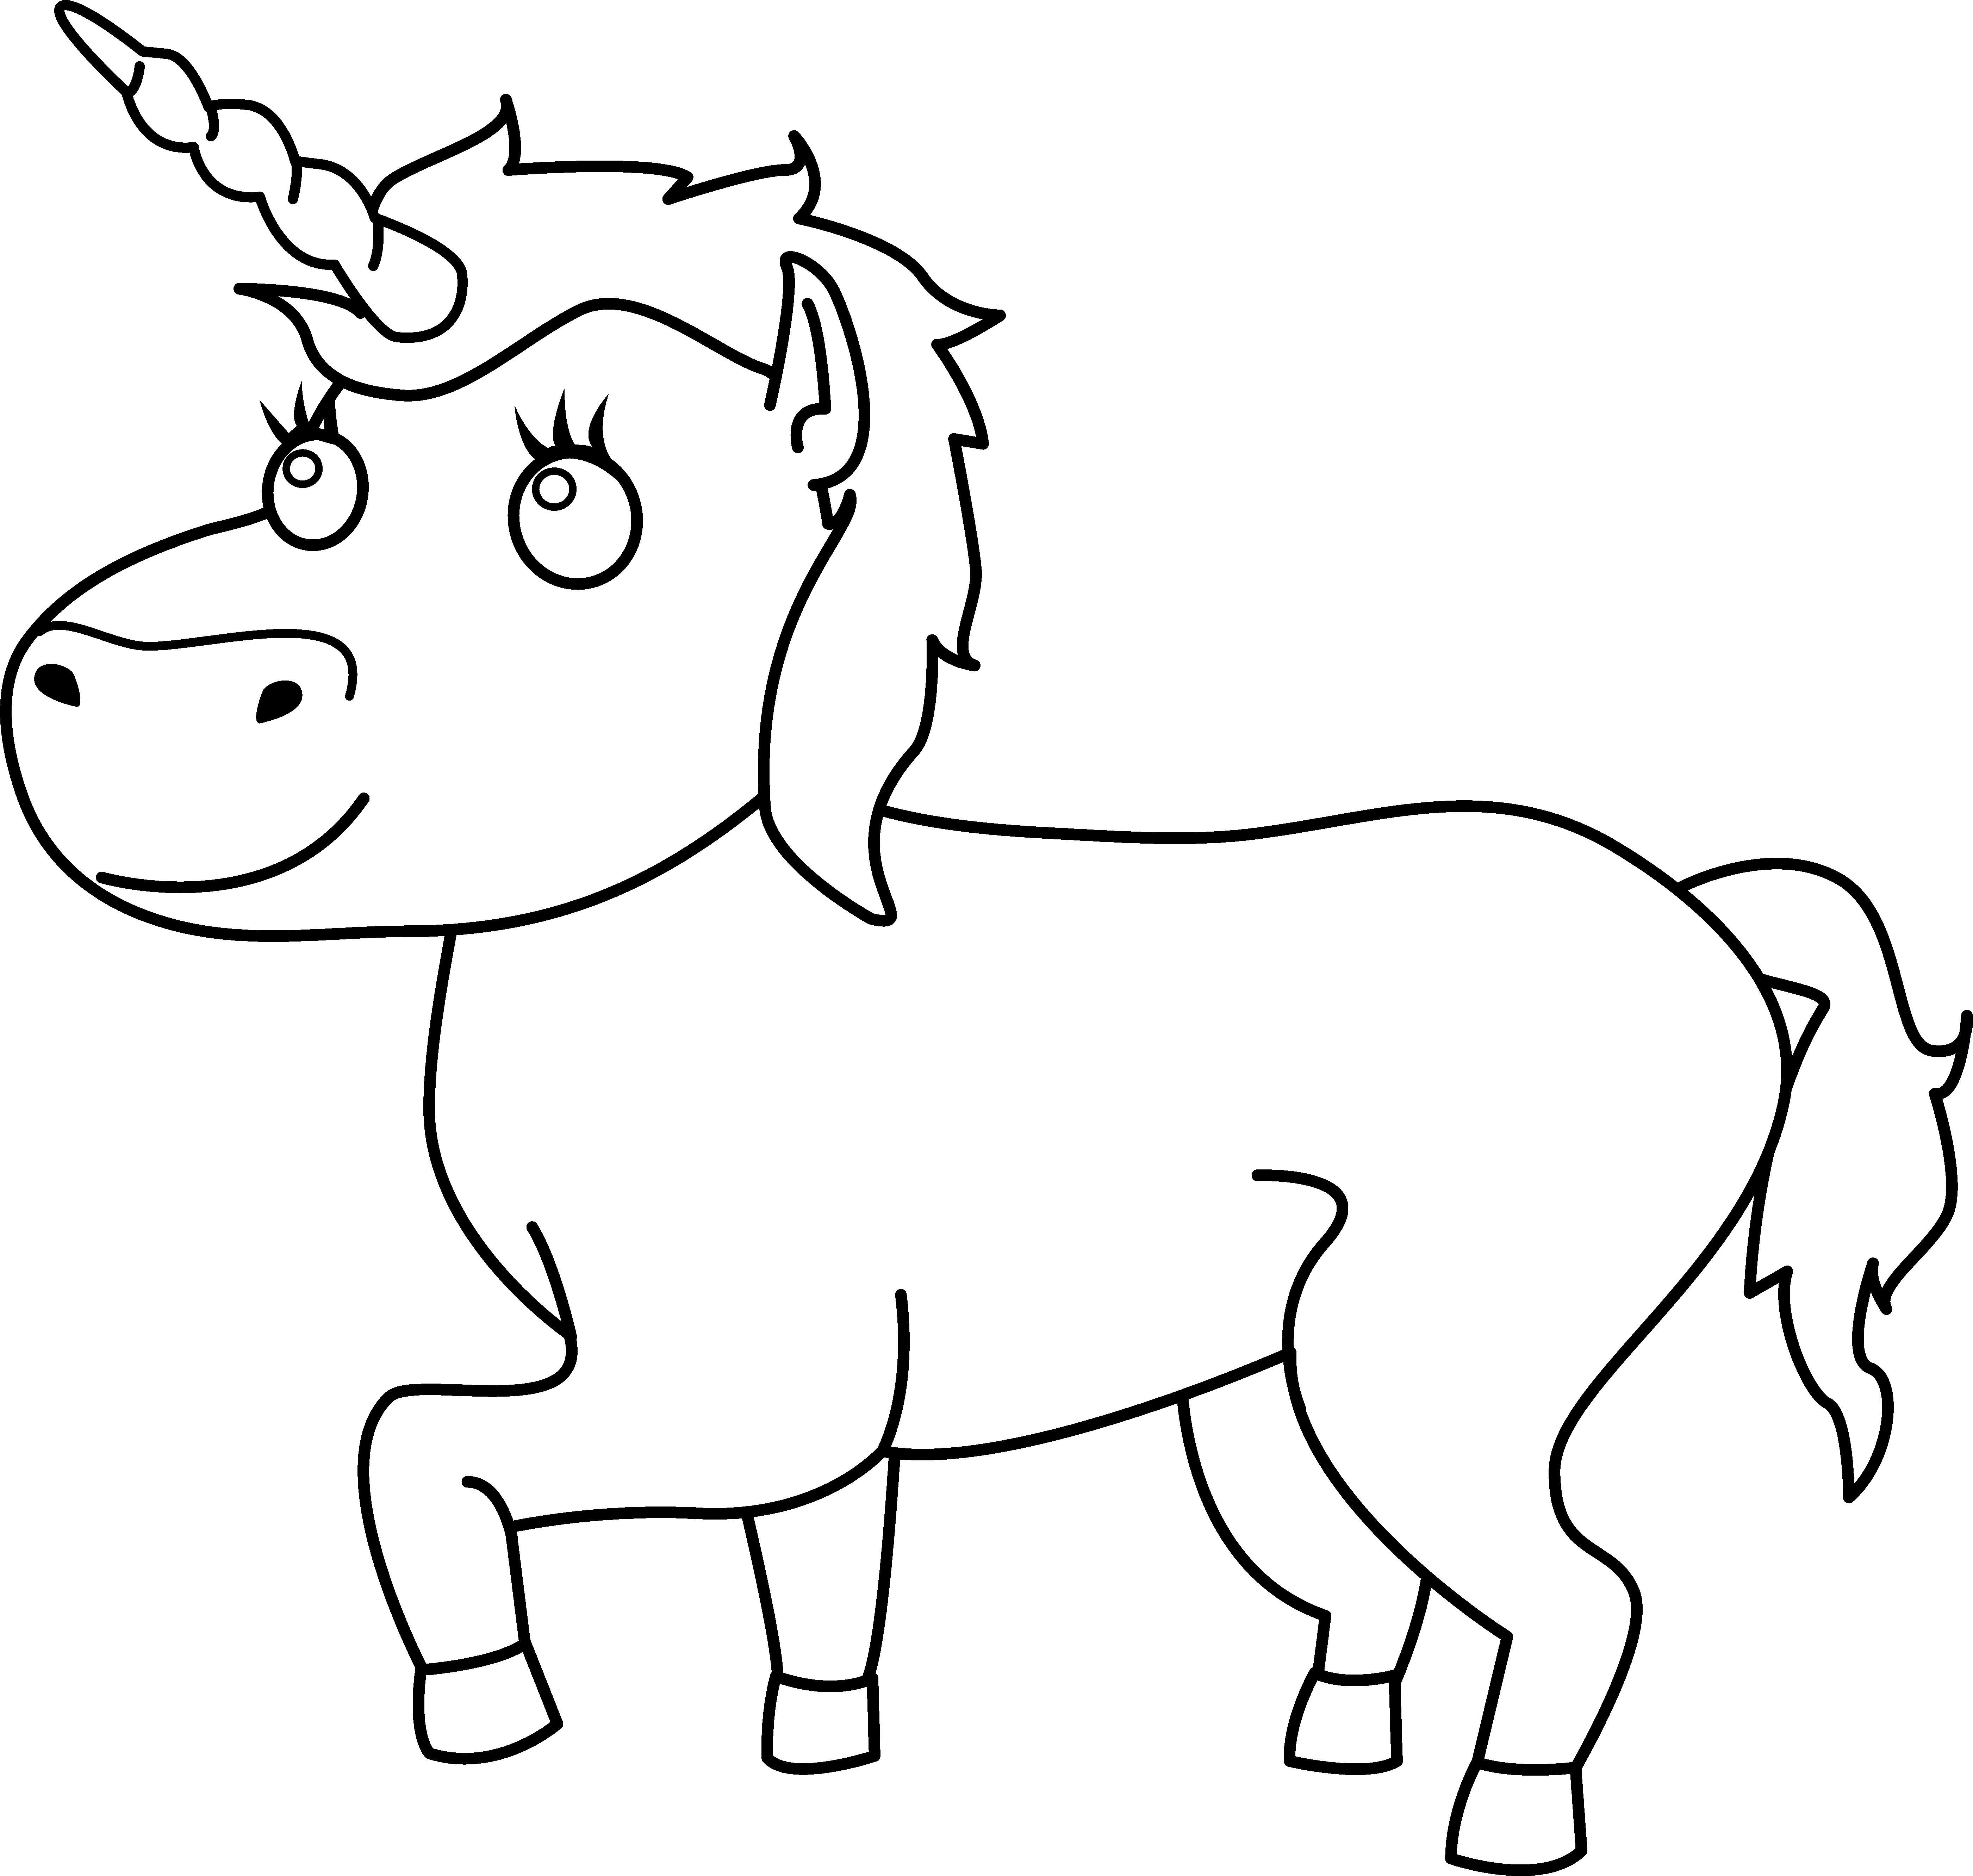 Colorable line art free. Clipart unicorn outline